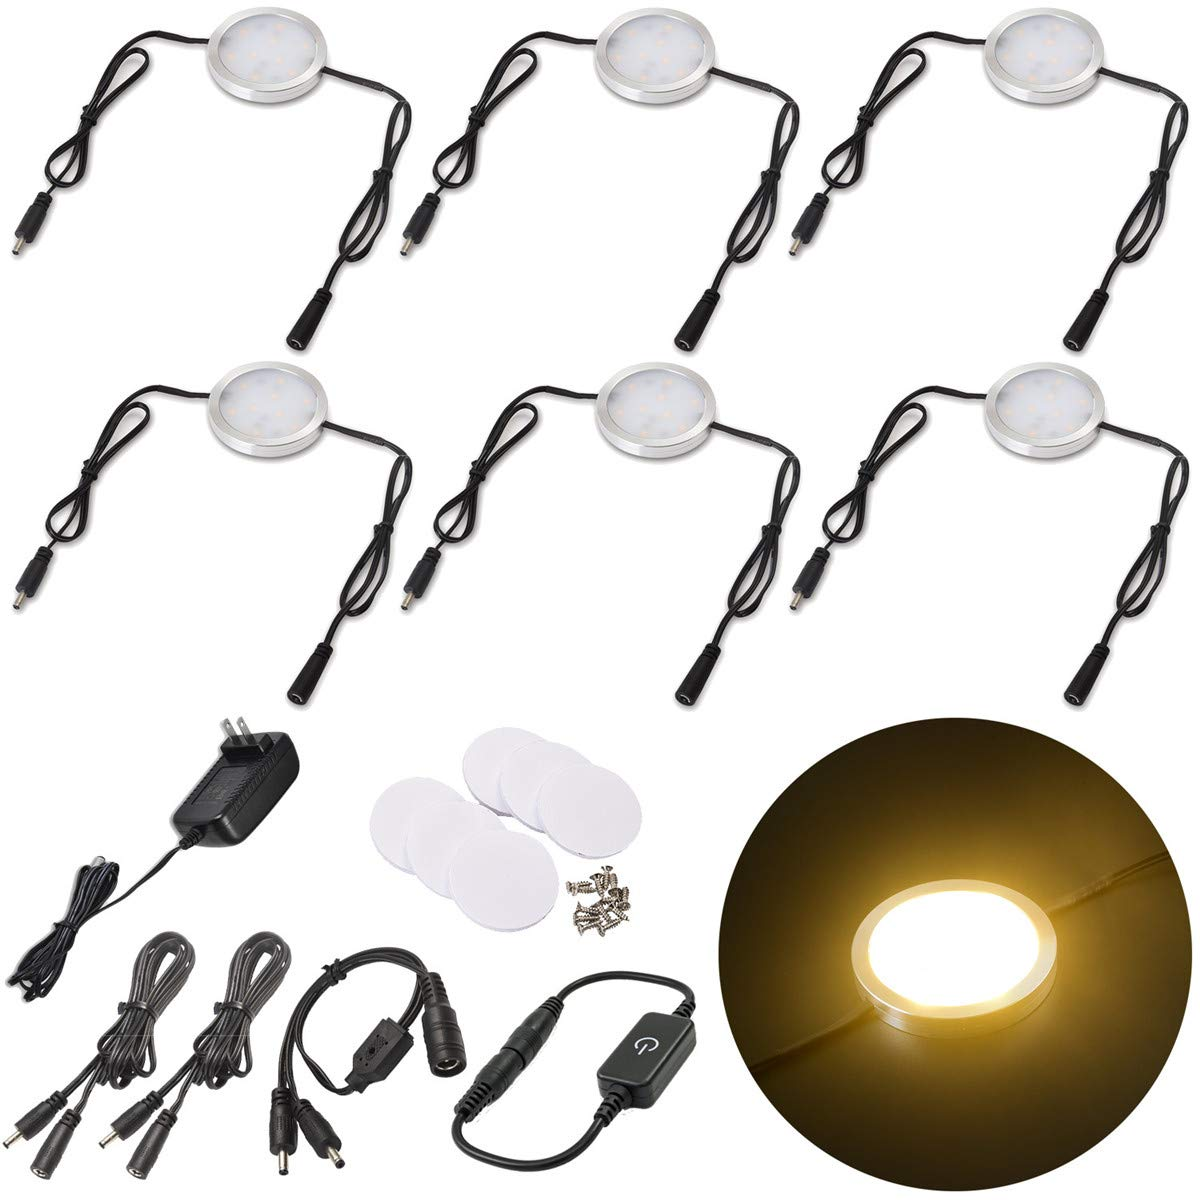 Lvyinyin 6 Packs Under Cabinet Lighting Dimmable LED Puck Lights Kit with 120V AC to 12V DC Wall Plug Power Adapter, Thin Profile, Linkable Lamps for Kitchen Counter Closet Lighting, Warm White